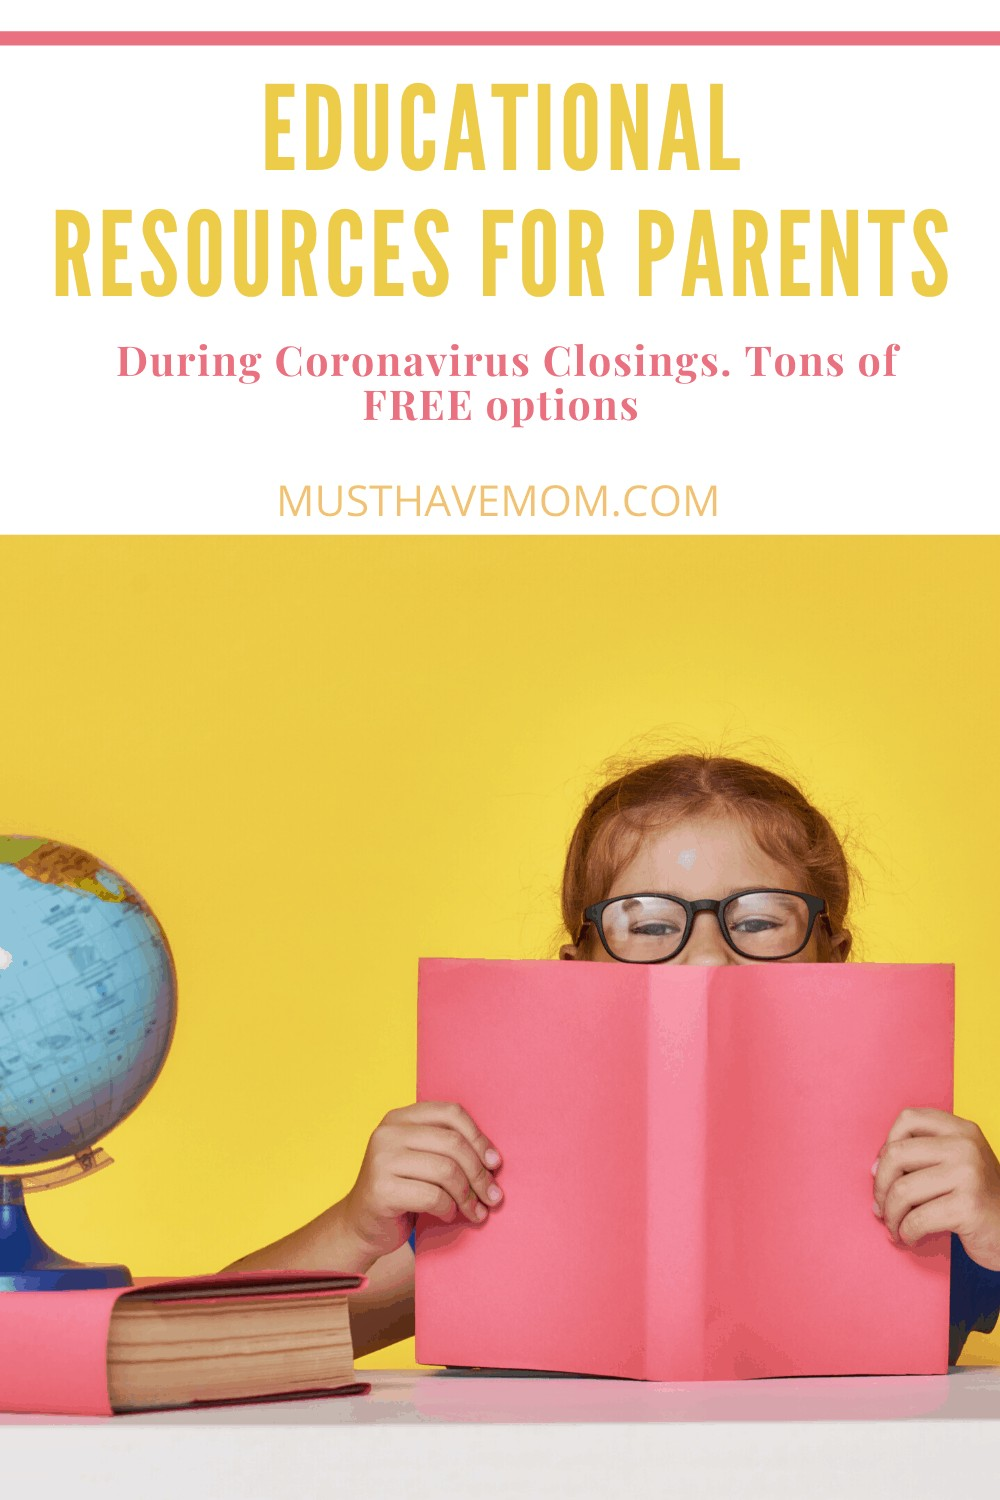 Are you a parent who suddendly finds yourself homeschooling? Get my list of free educational resources for parents during Coronavirus closings.